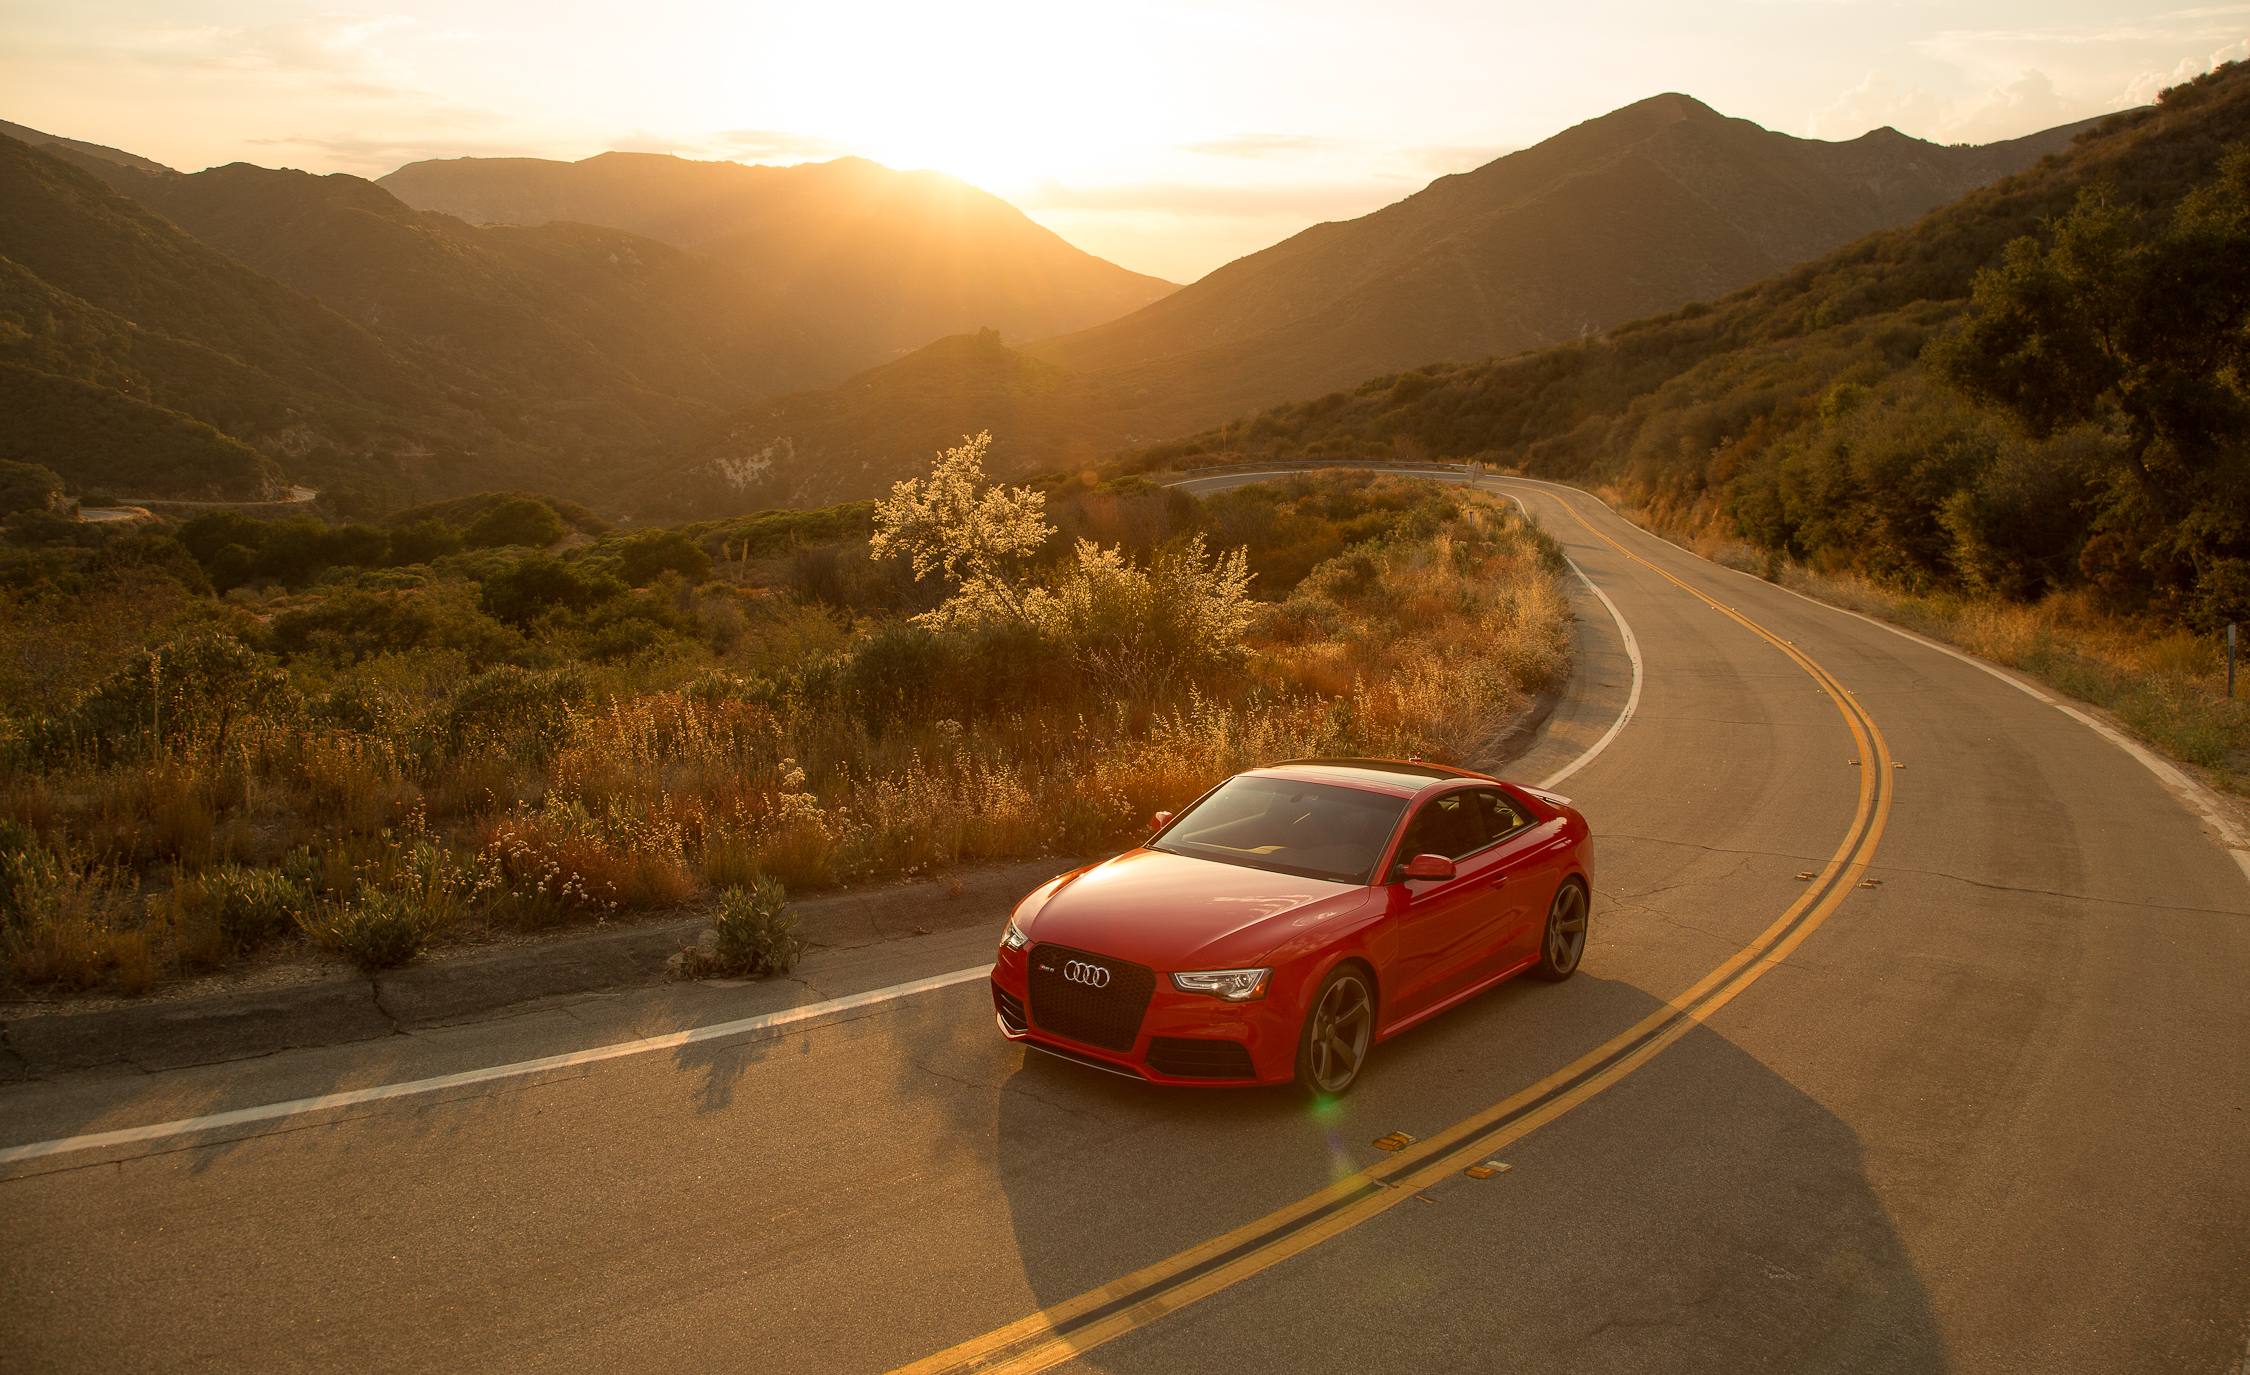 2013 Audi RS 5 Test Drive Preview (Photo 33 of 41)